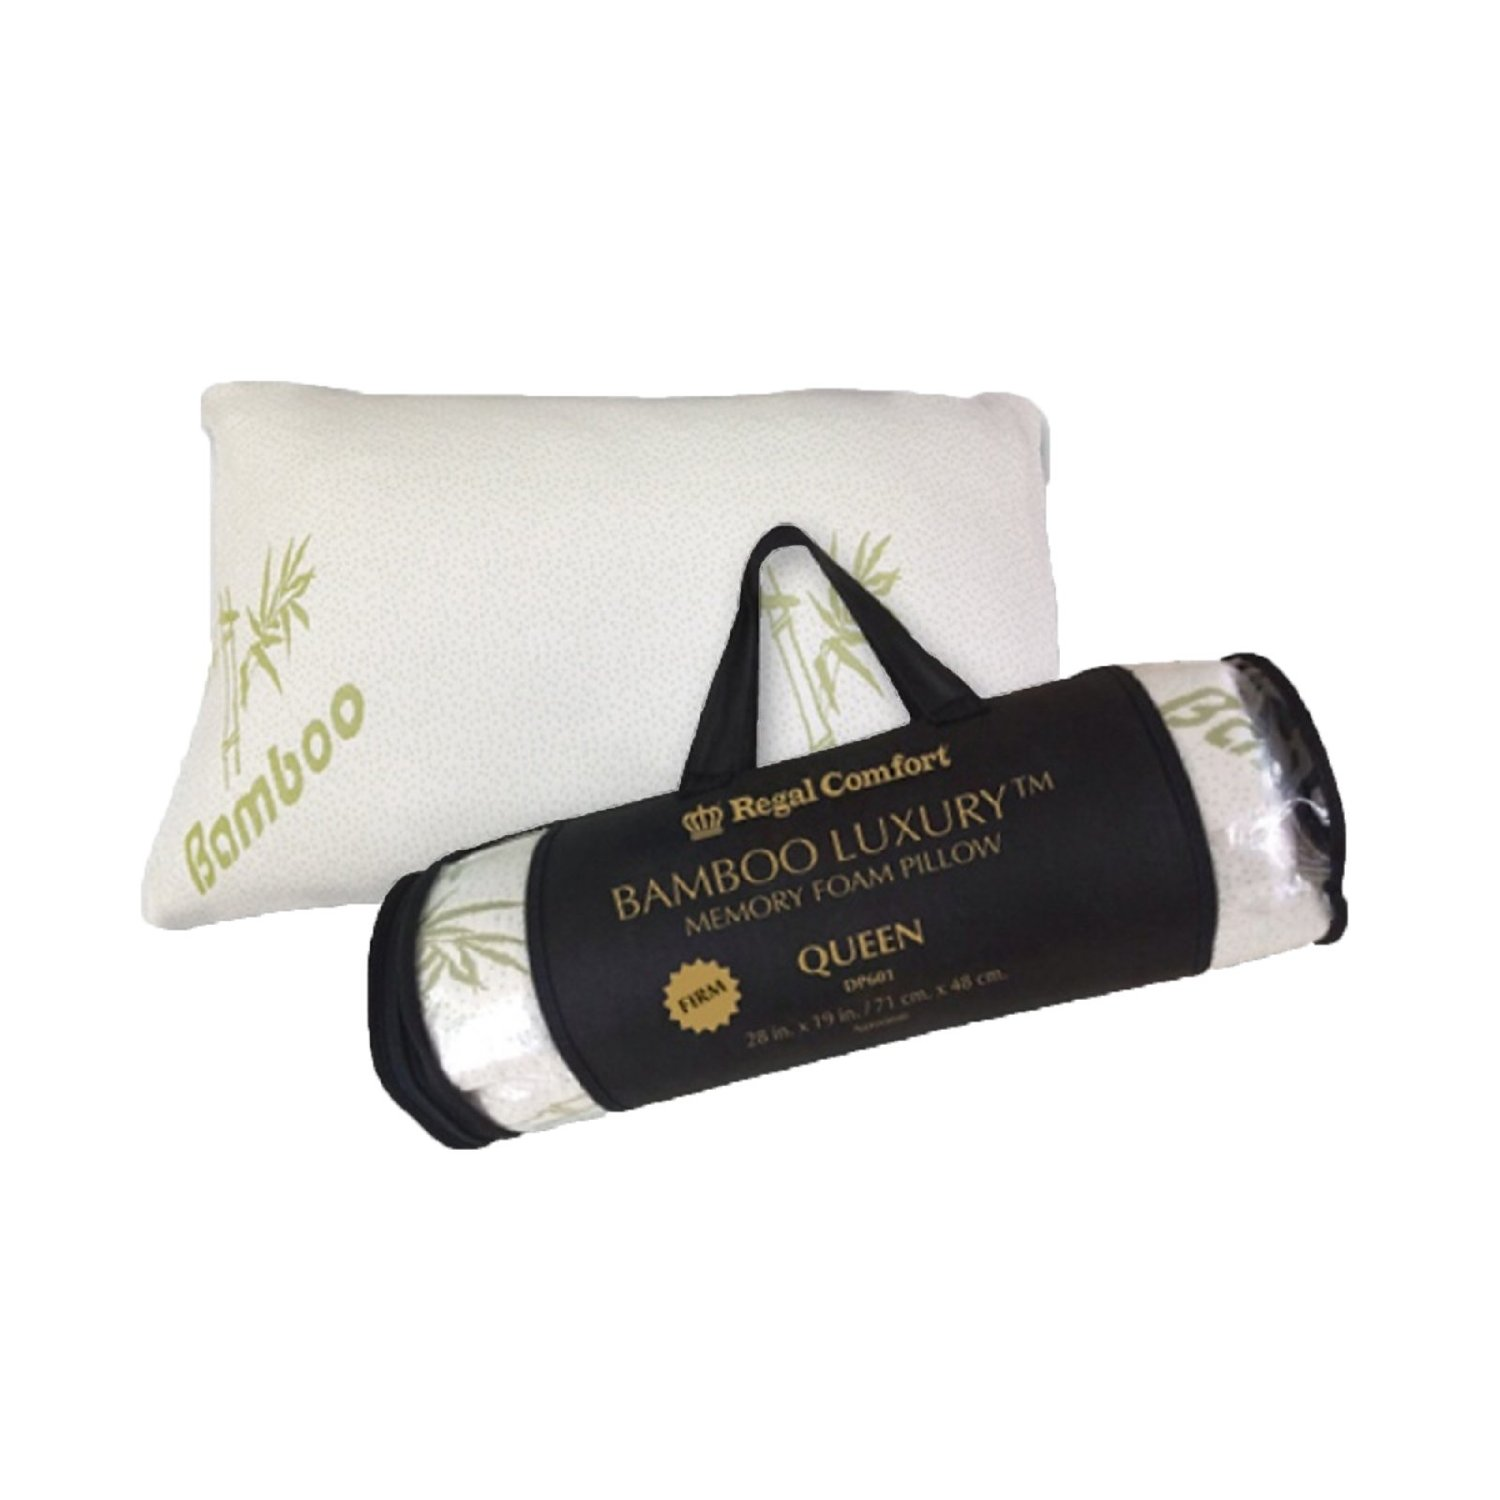 Firm Memory Foam Pillow Buy Luxury Firm Organic Comfort Bamboo Memory Foam Pillow Set Of